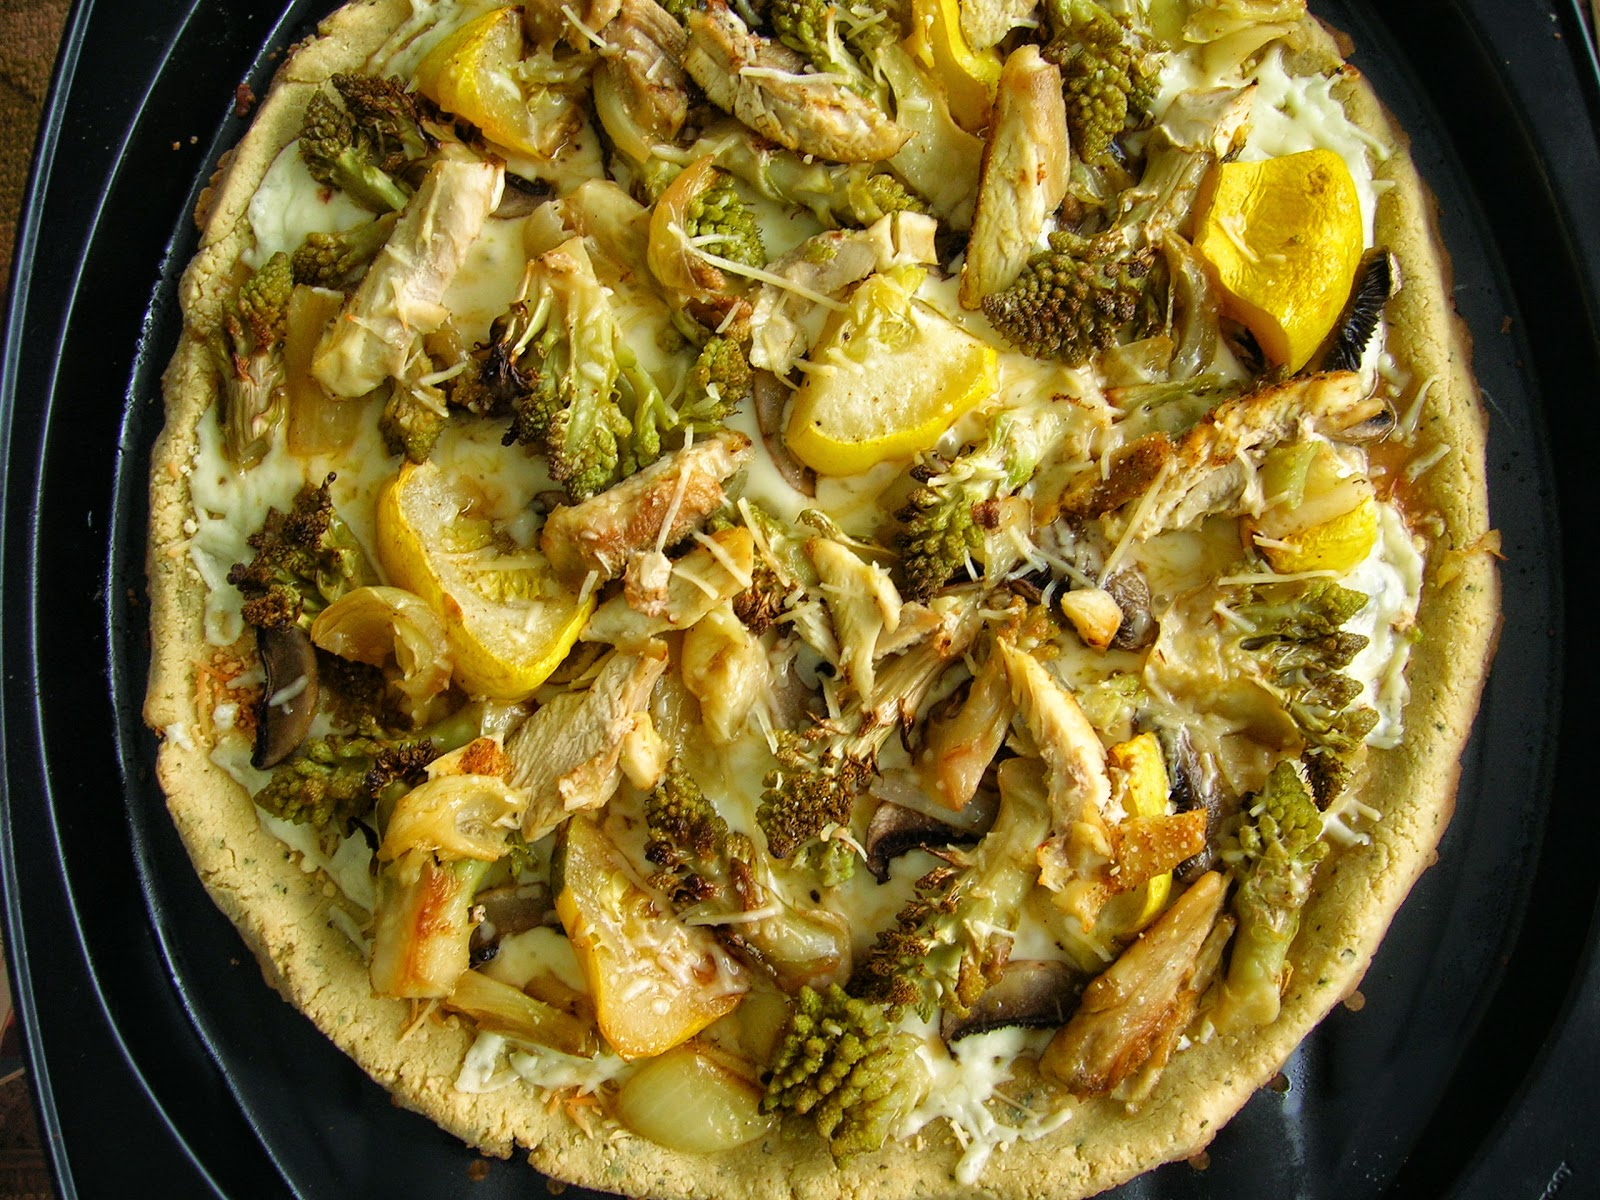 Low Carb Pizza Crust with Chicken & Roasted Veggies, gluten free, yeast free, xanthan free